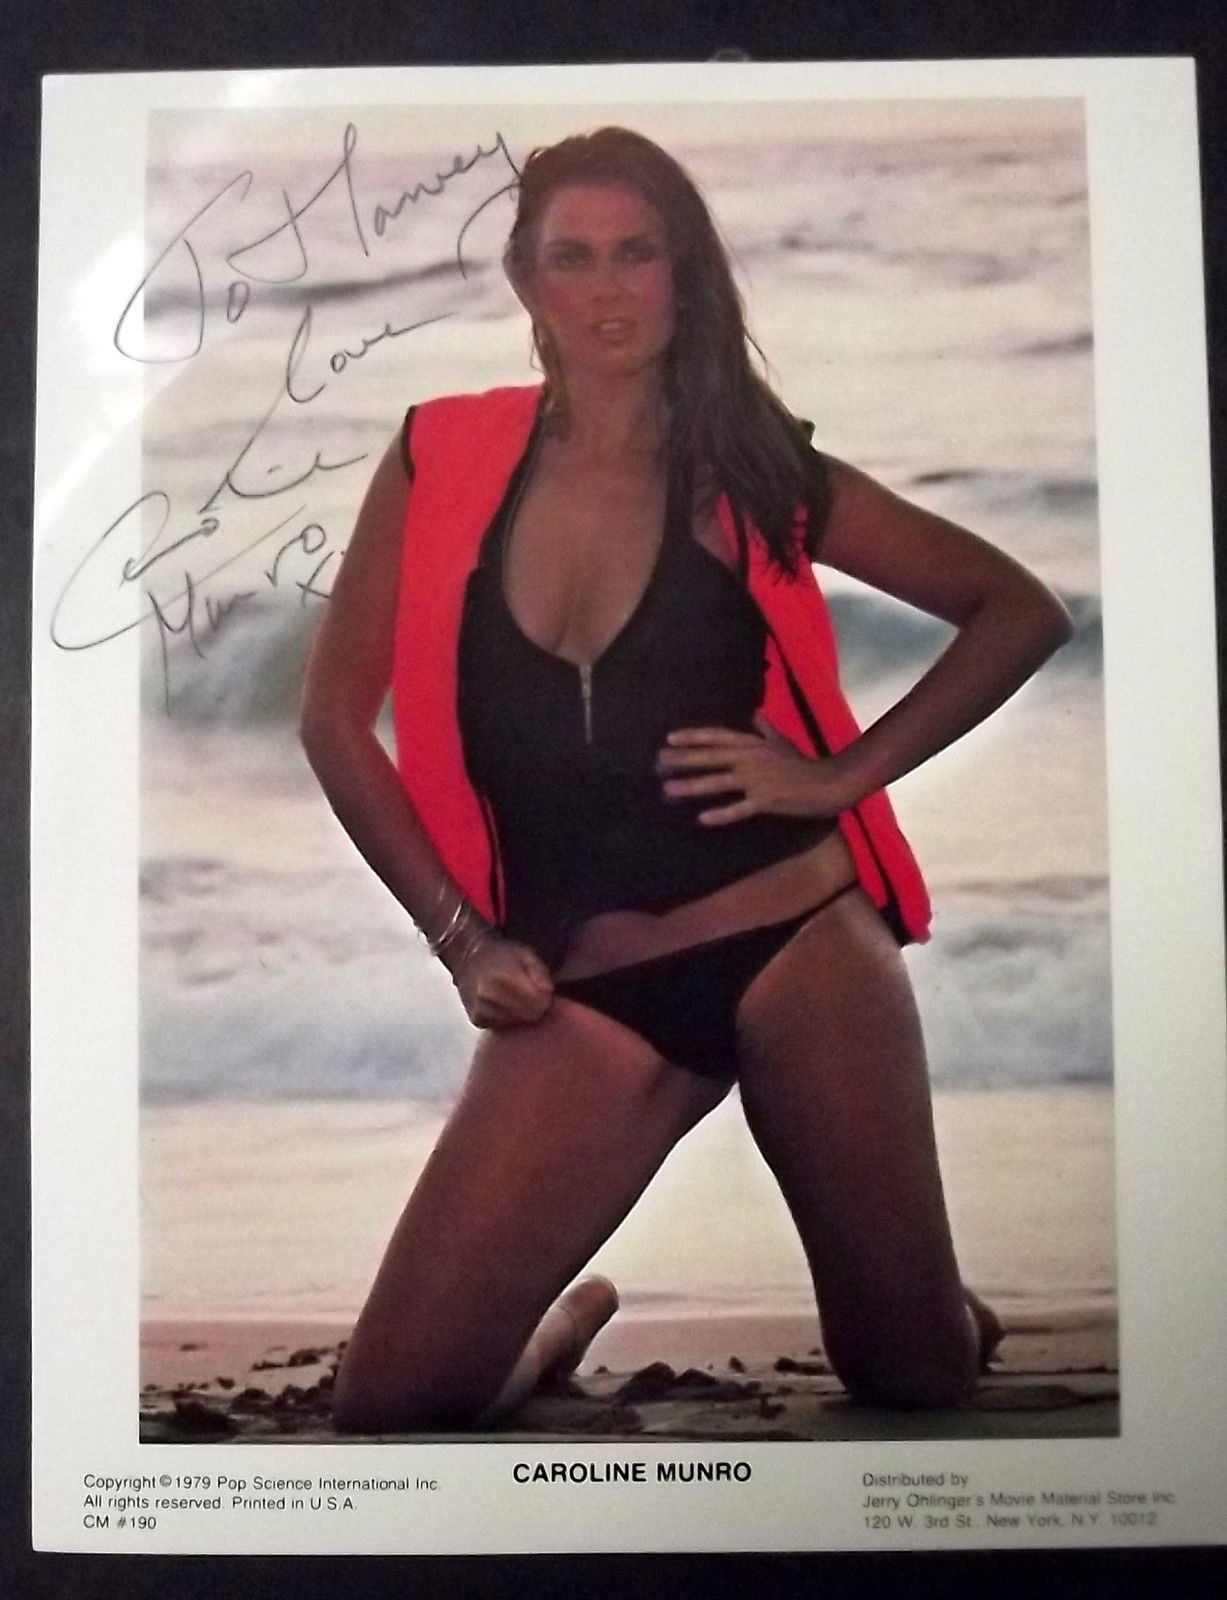 CAROLINE MUNRO (SPY WHO LOVE ME ) SEXY AUTOGRAPH PHOTO (CLASSIC MUNRO) HOT